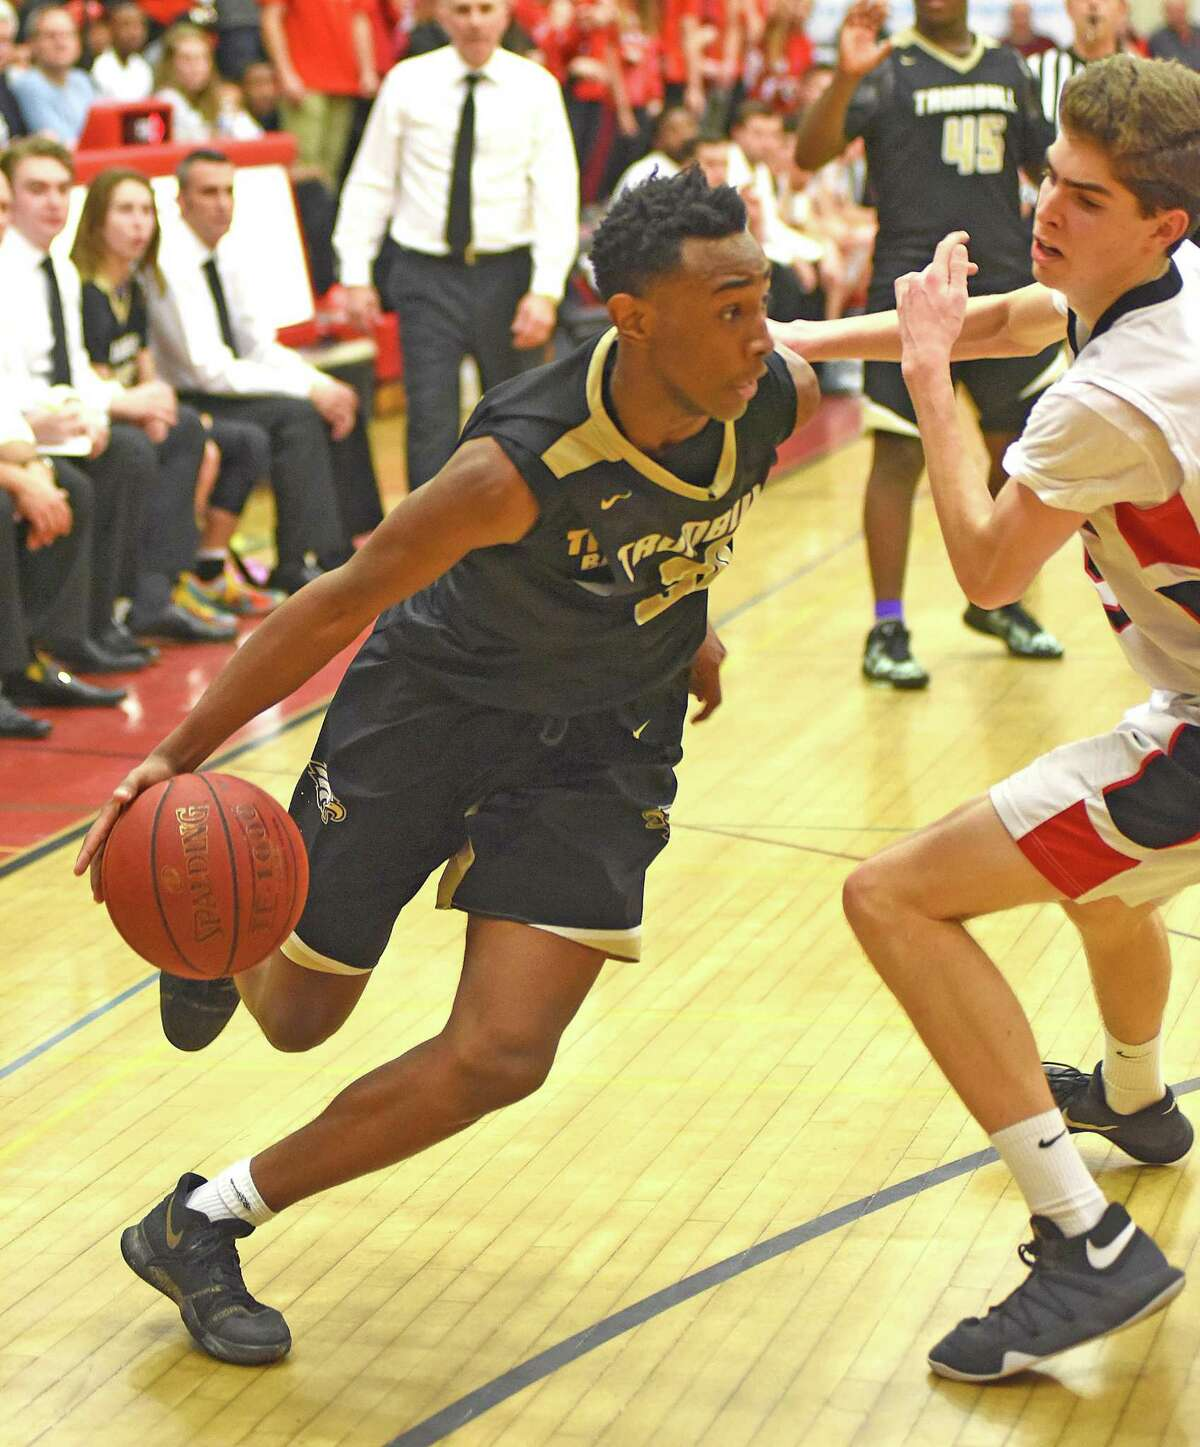 Trumbull's Timmond Williams, left, drives past a Fairfield Warde defender during Saturday's FCIAC boys basketball quarterfinal at the Fairfield Warde Gymnasium. Trumbull won 65-58.